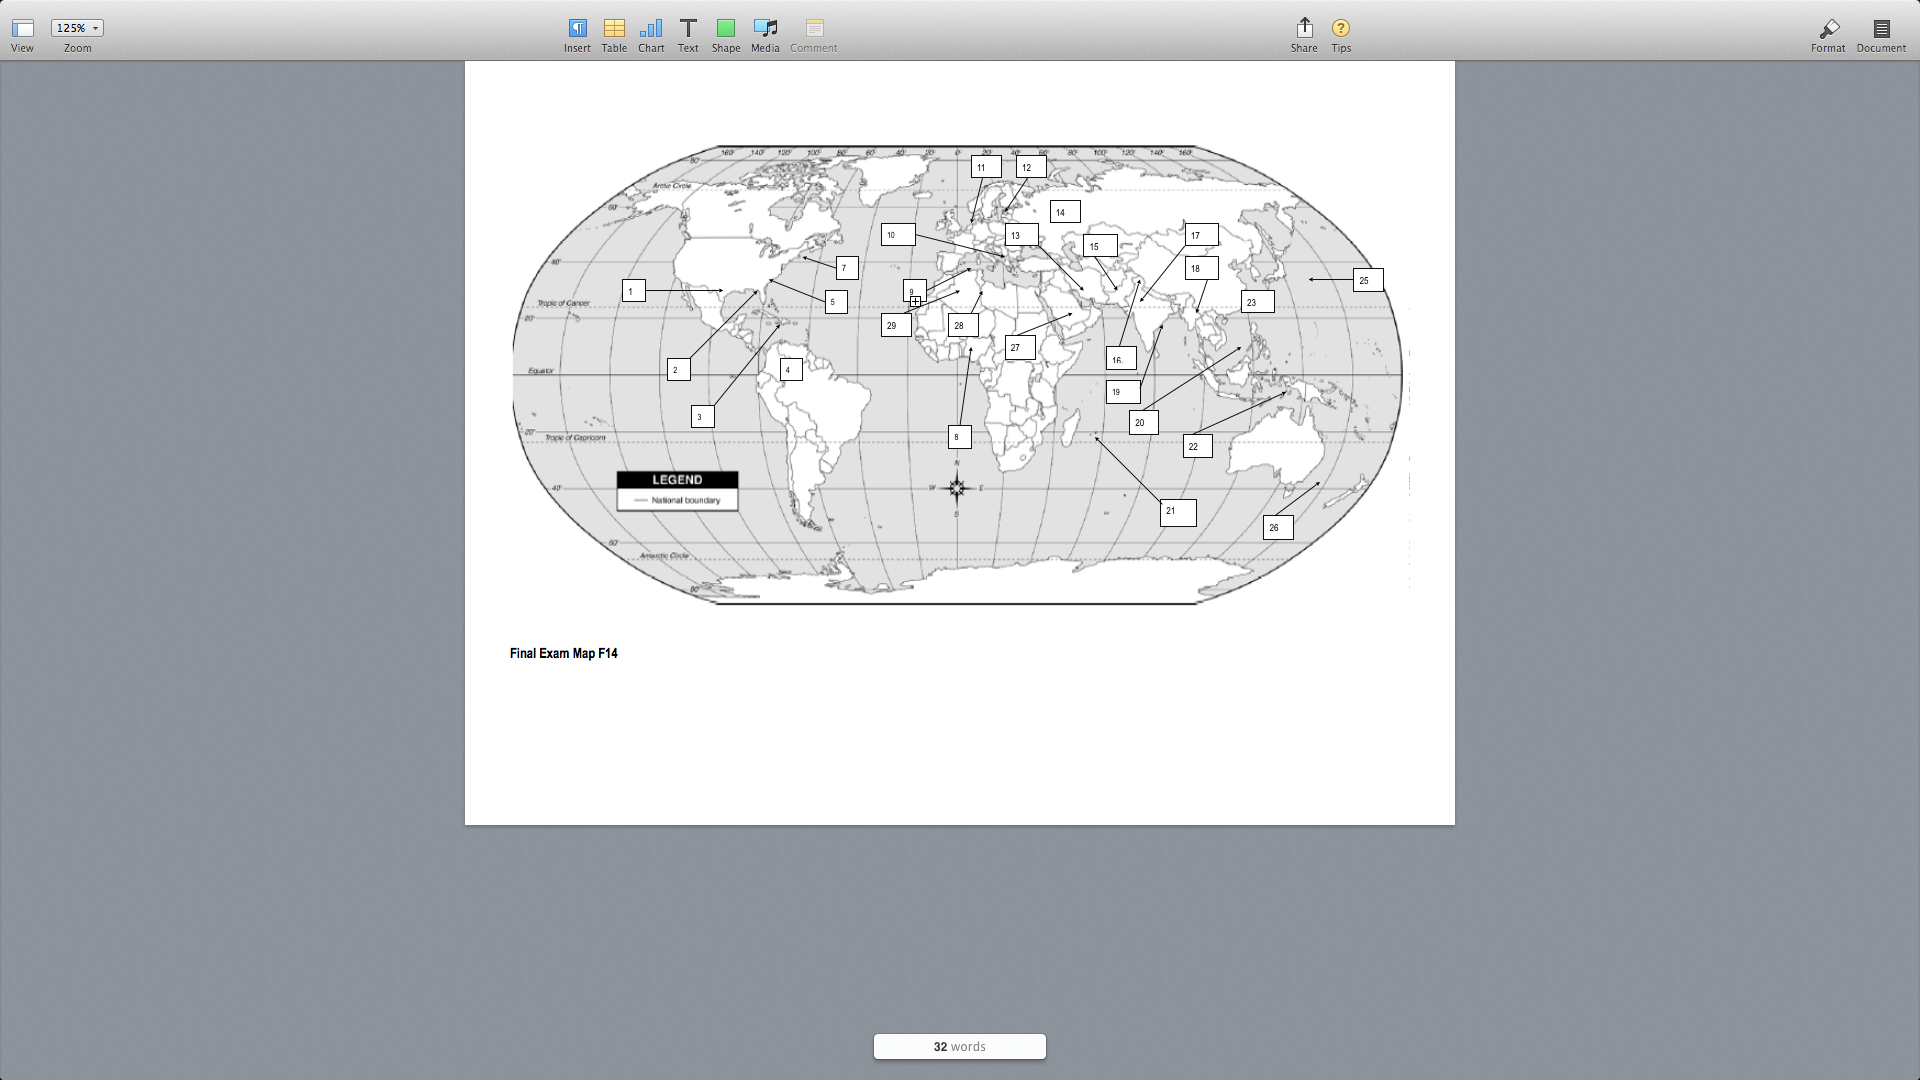 Solved use the map provided to answer the following quest 125 view oom insert table chart text shape media comment share tips format document 140 use the map provided to answer the following questions gumiabroncs Images